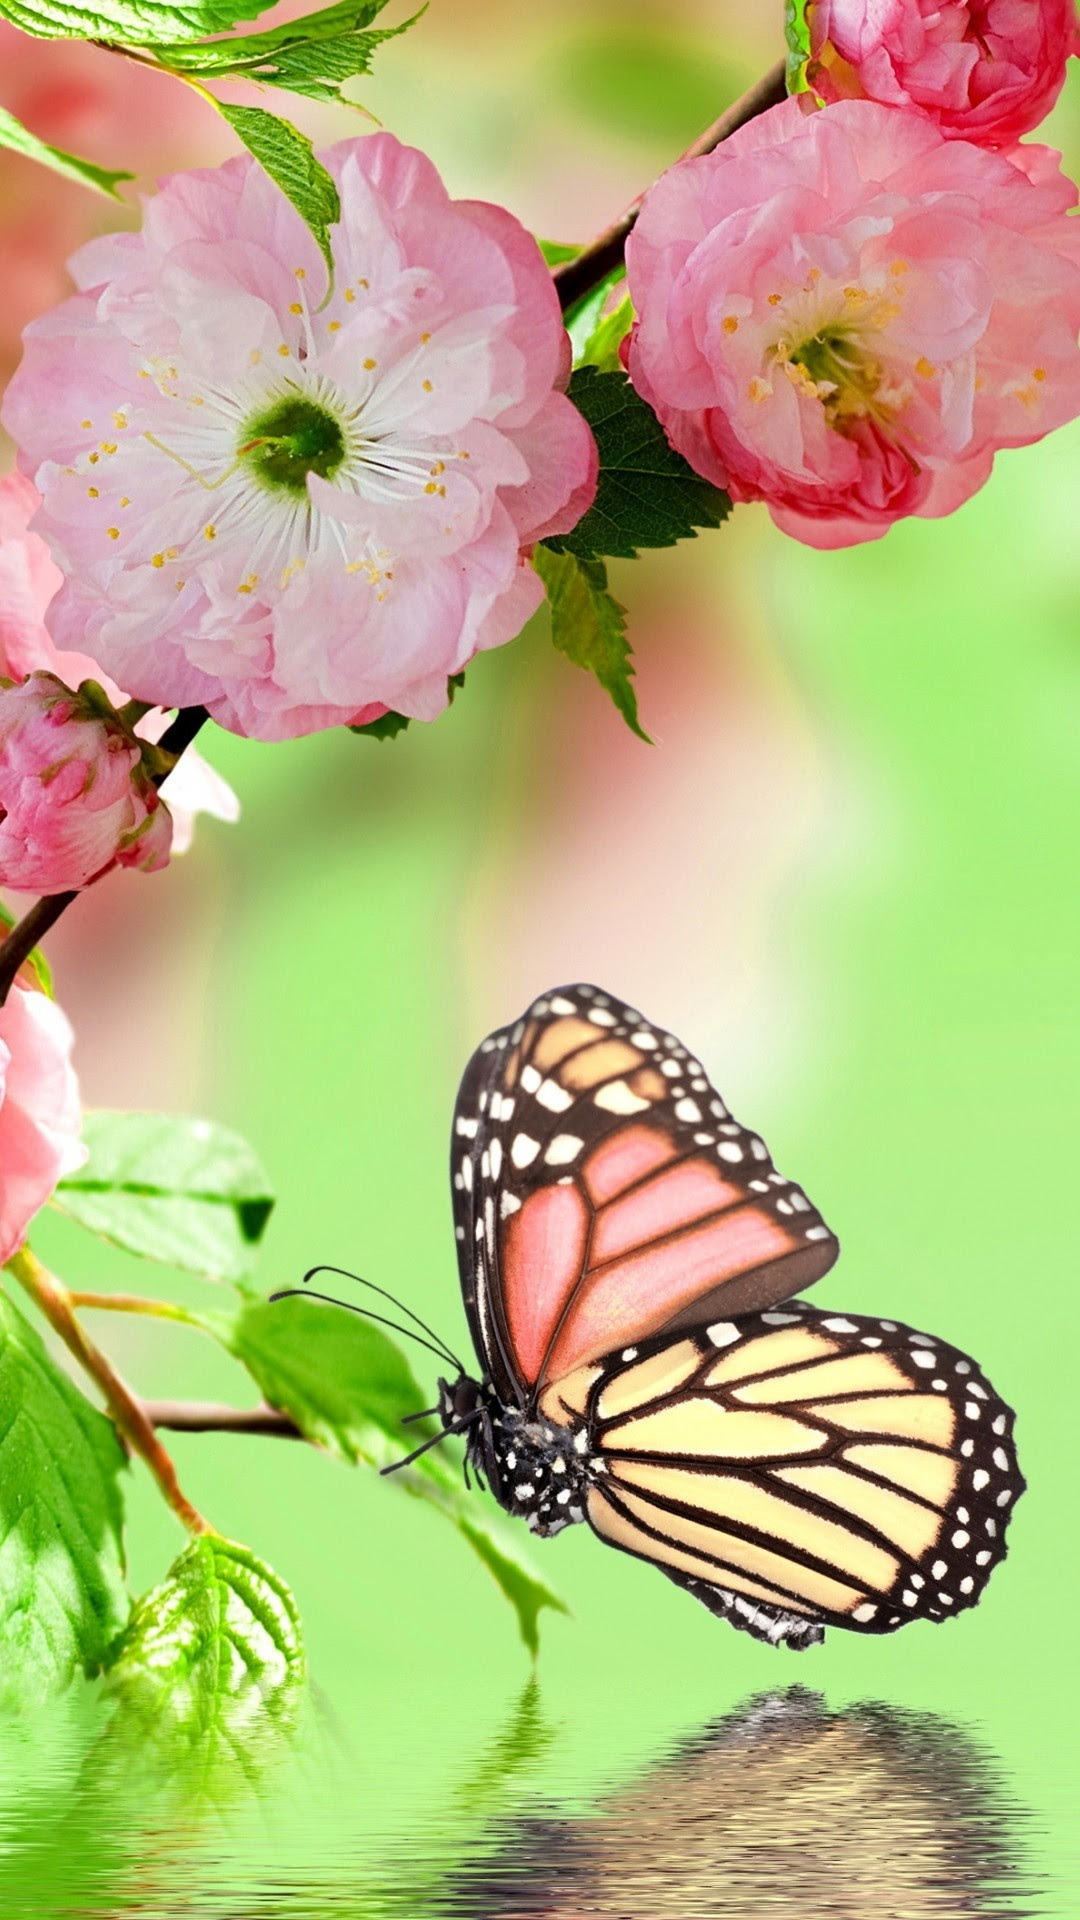 Aesthetic Tumblr Monarch Butterfly Iphone Wallpaper ...